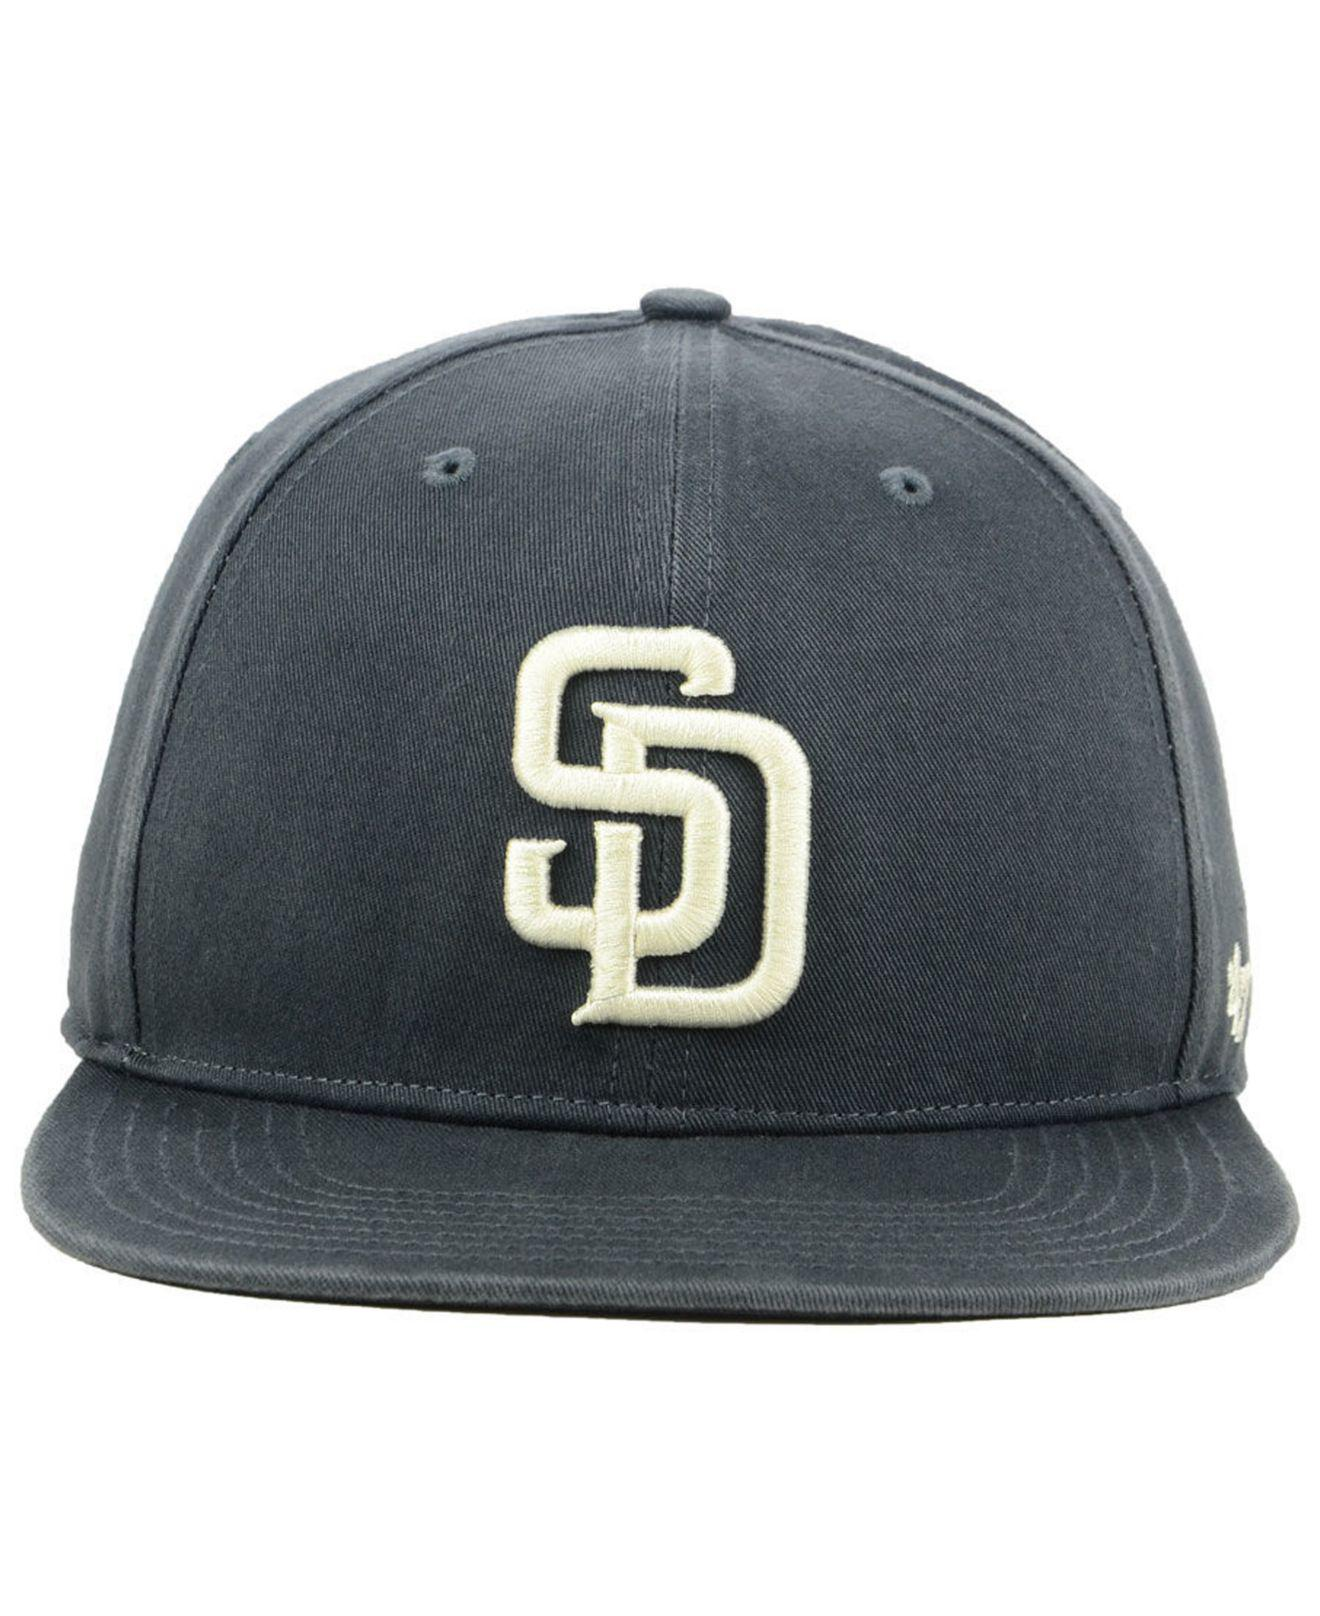 official photos 1fbd9 fa1df ... shopping lyst 47 brand san diego padres garment washed navy snapback cap  in blue for men